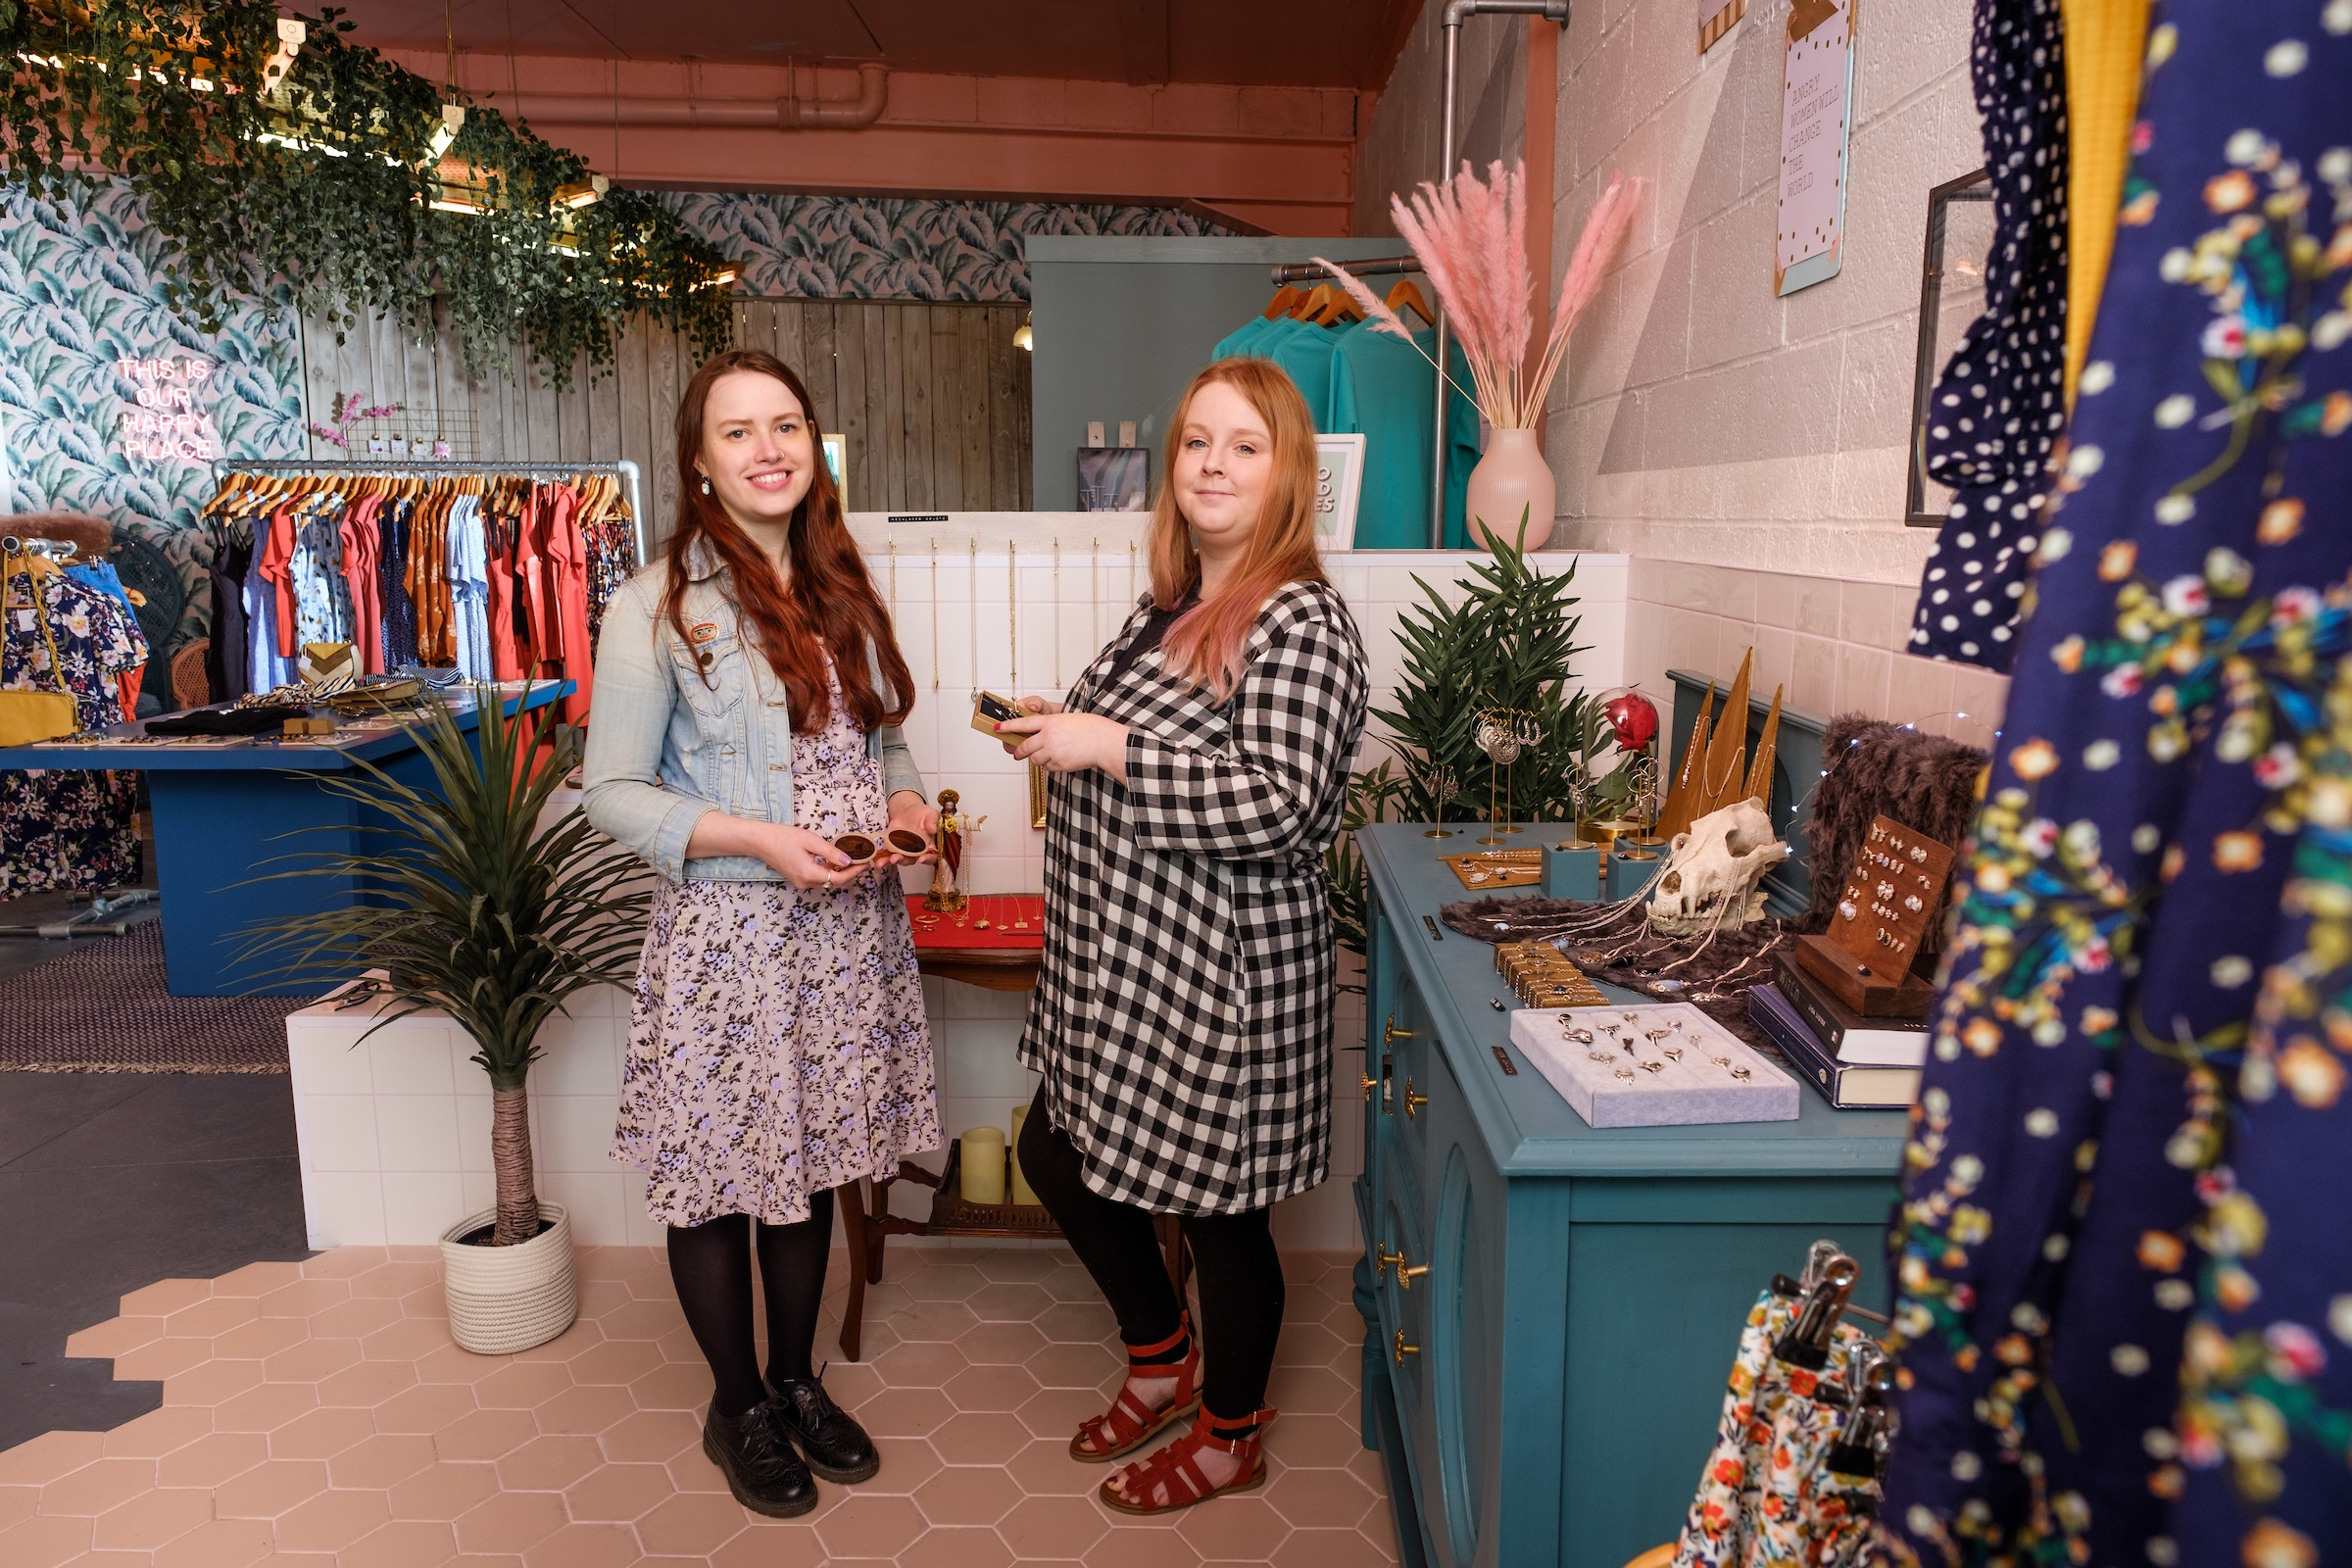 Owner Nicola Gibbons, pictured right, with manager Anna Carter inside Tessies which has just opened on Humber Street, in the heart of the Fruit Market.